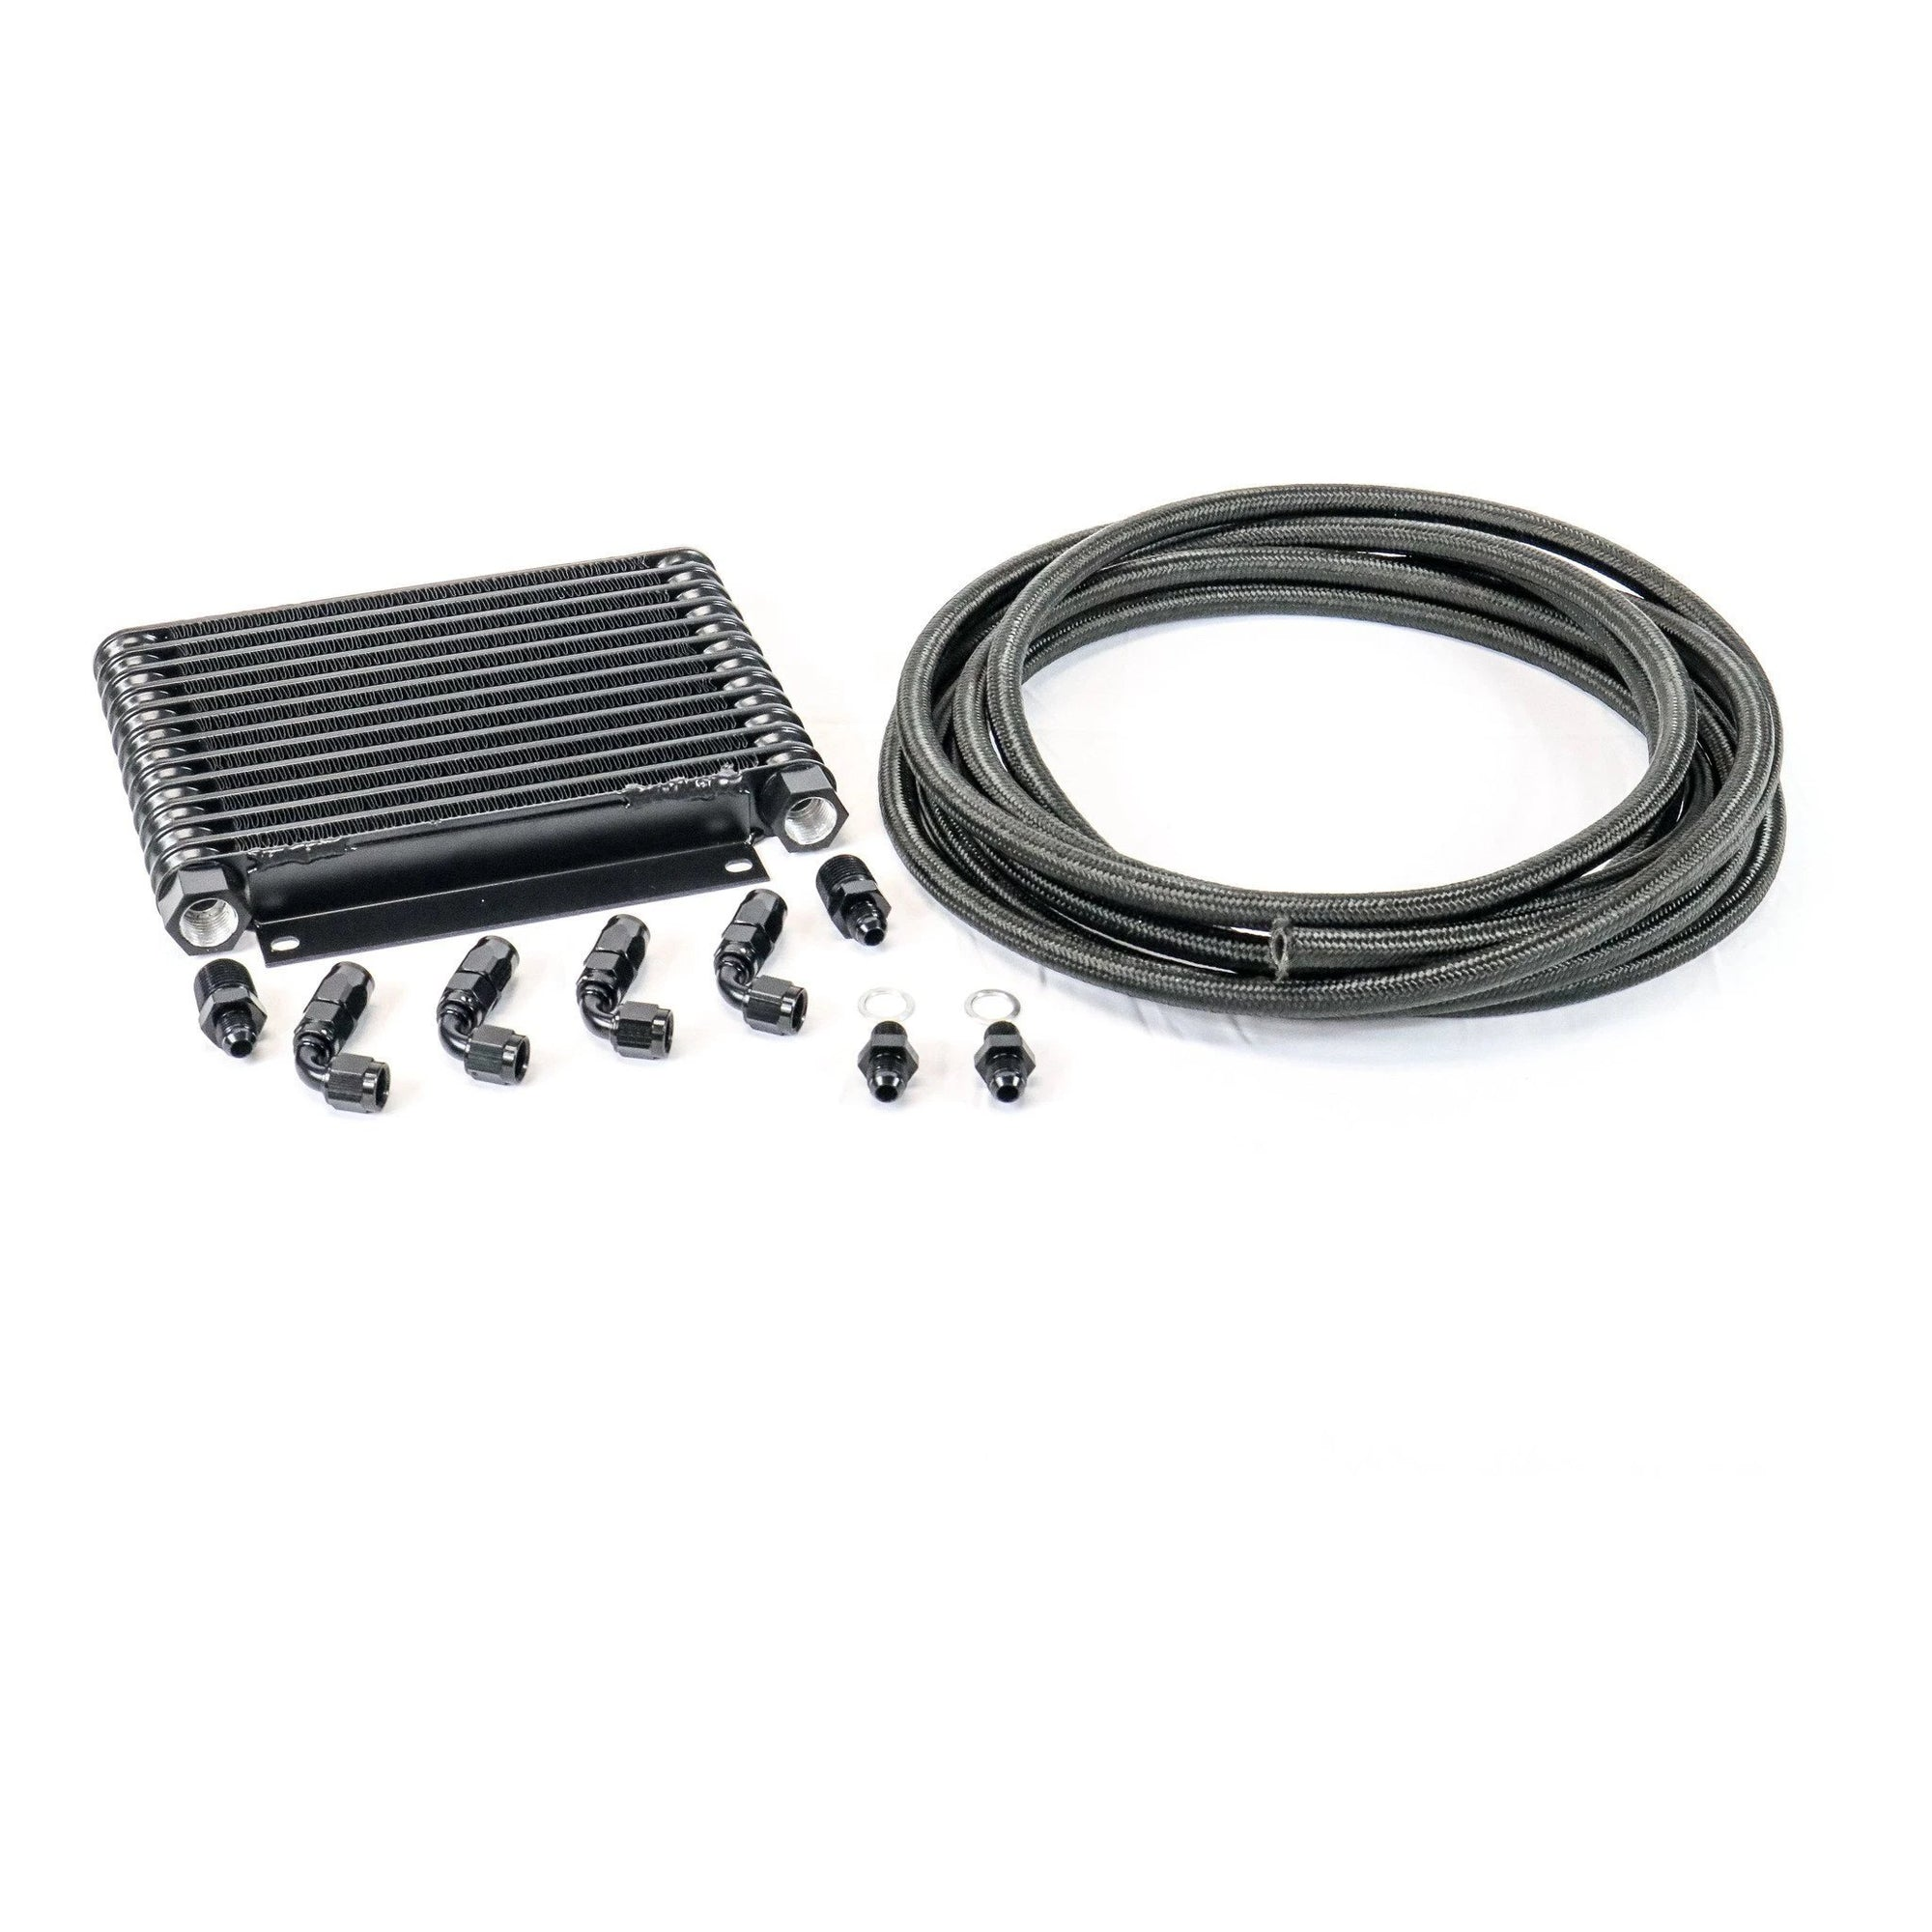 Aftermarket Powerglide Derale Trans Cooler Kit w/Fragola Lines/Fittings-Derale-Motion Raceworks